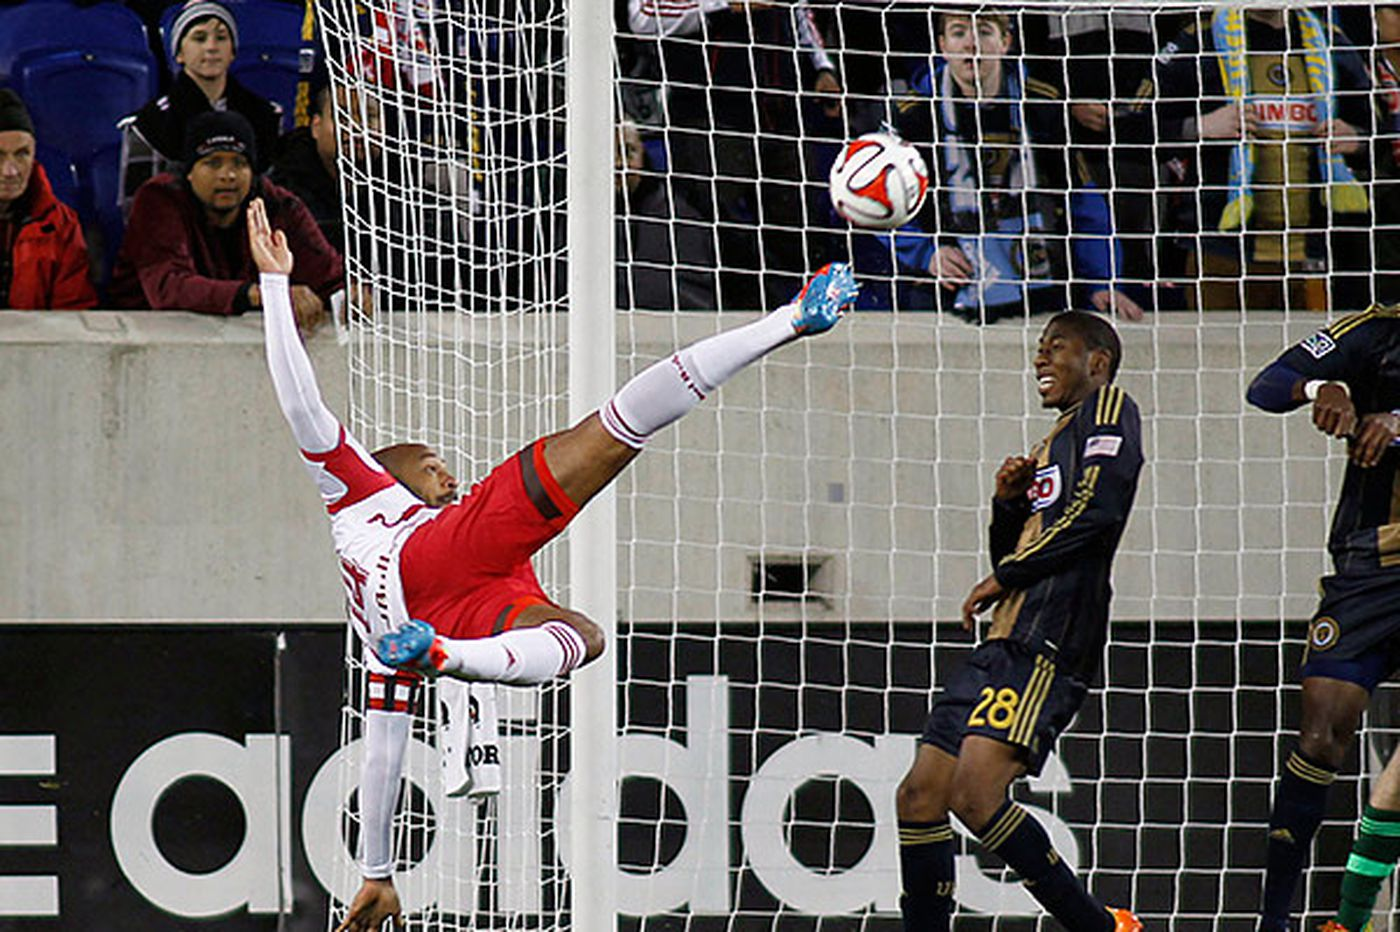 Union falls to Red Bulls